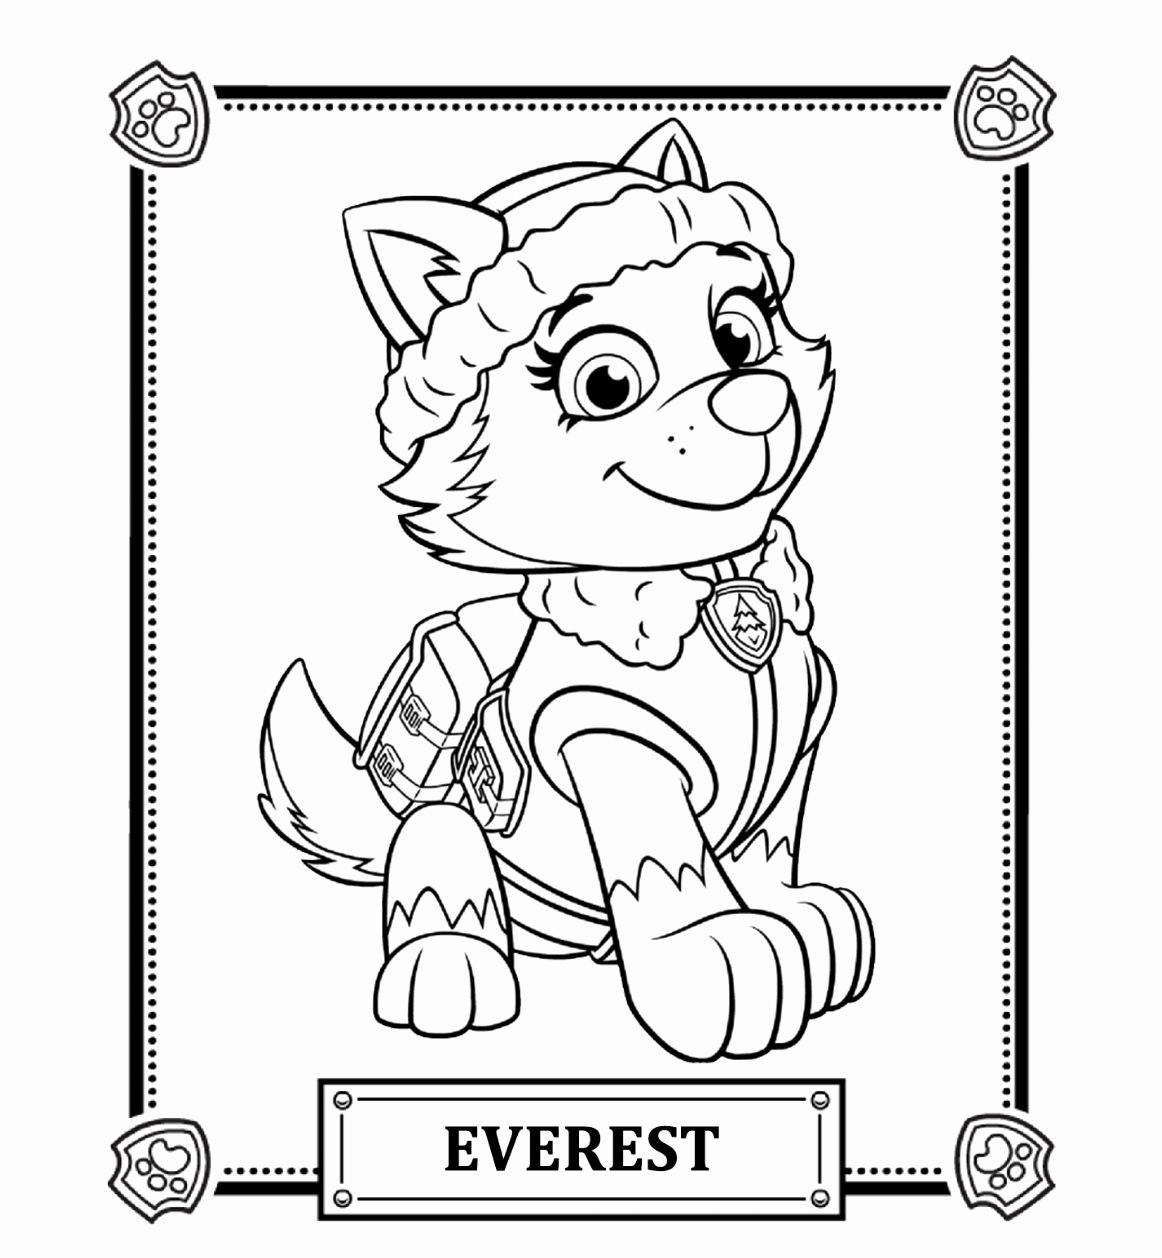 Paw Patrol Coloring Book Lovely Paw Patrol Coloring Pages Best